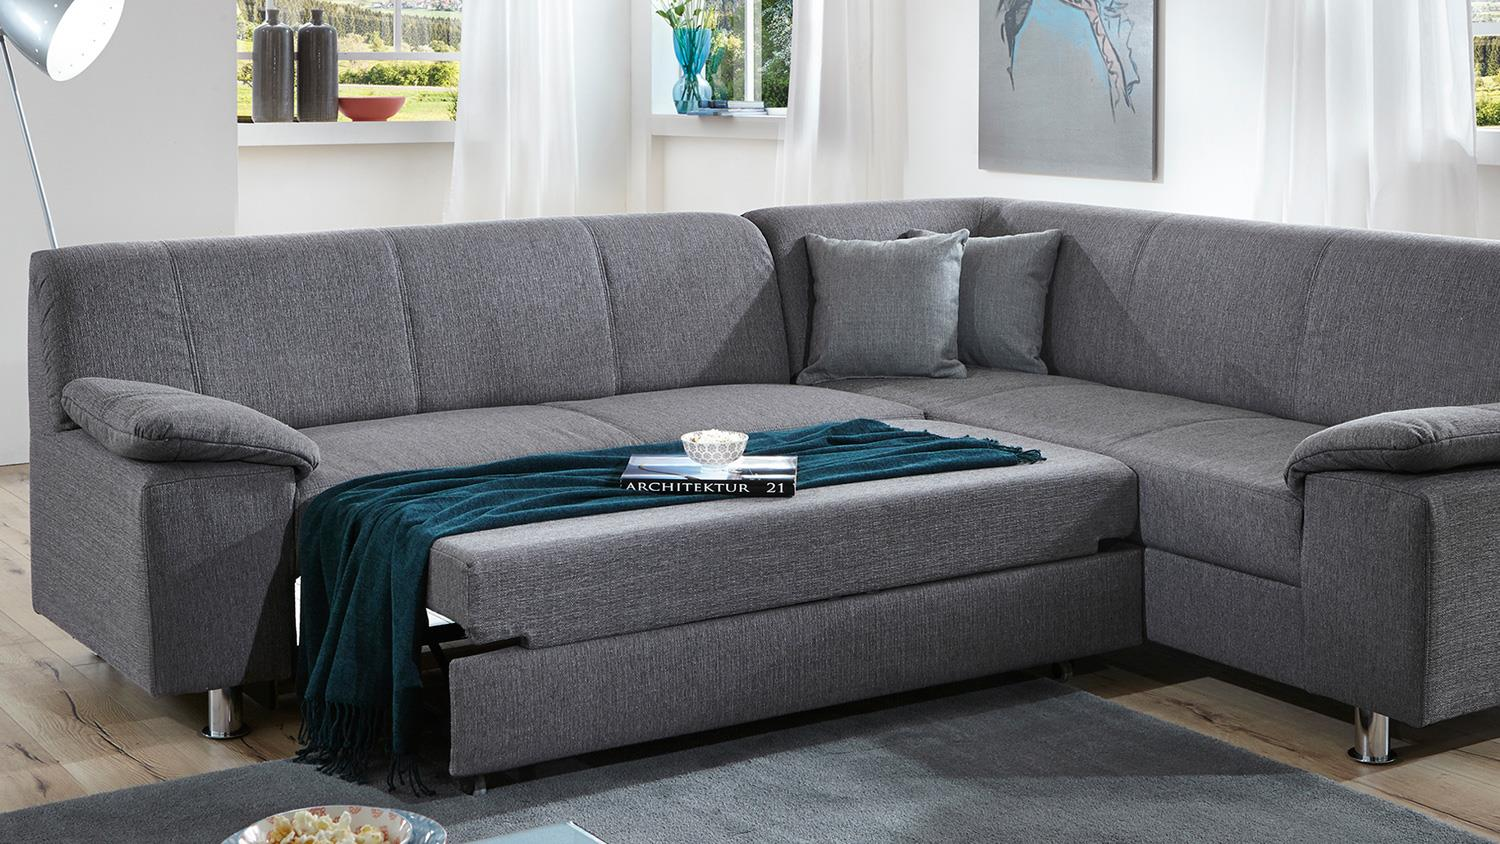 ecksofa alamo wohnlandschaft sofa in grau mit bettfunktion. Black Bedroom Furniture Sets. Home Design Ideas